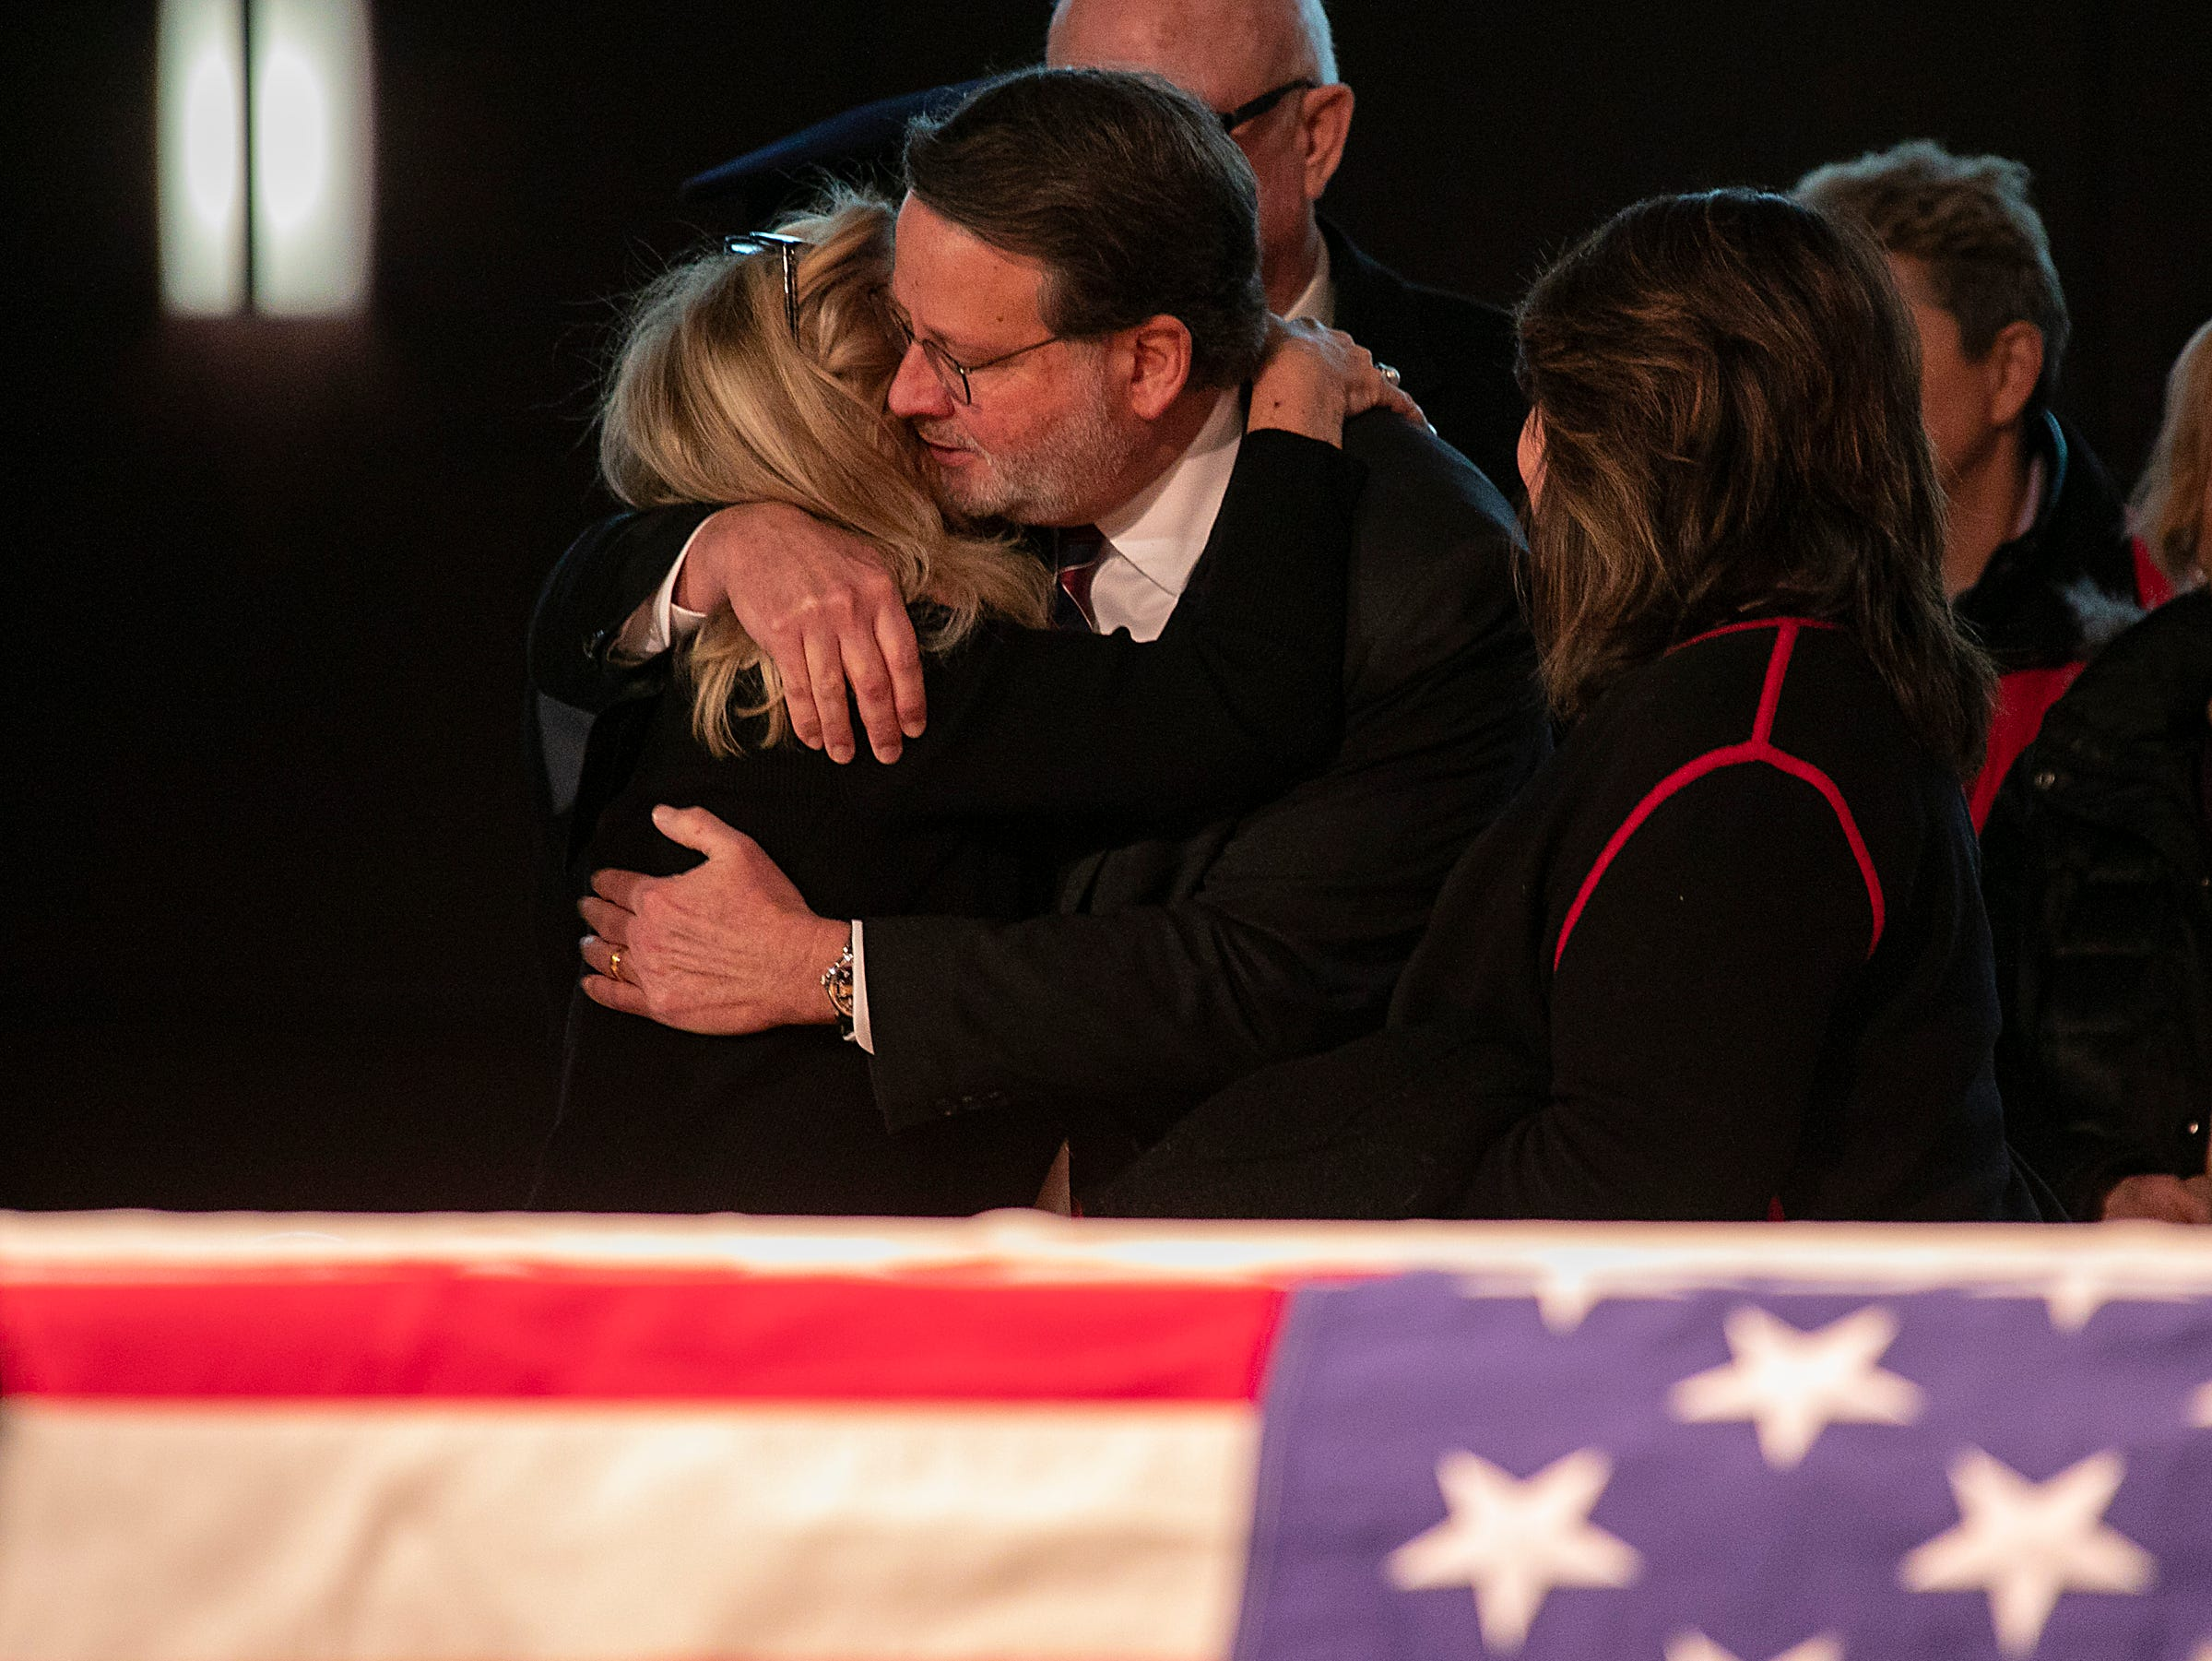 Congresswoman Debbie Dingell, left, greets Senator Gary Peters as visitors stream by to pay their respects to her husband John Dingell who is lying in repose at the Michael A. Guido theater in Dearborn Monday, Feb. 11, 2019.